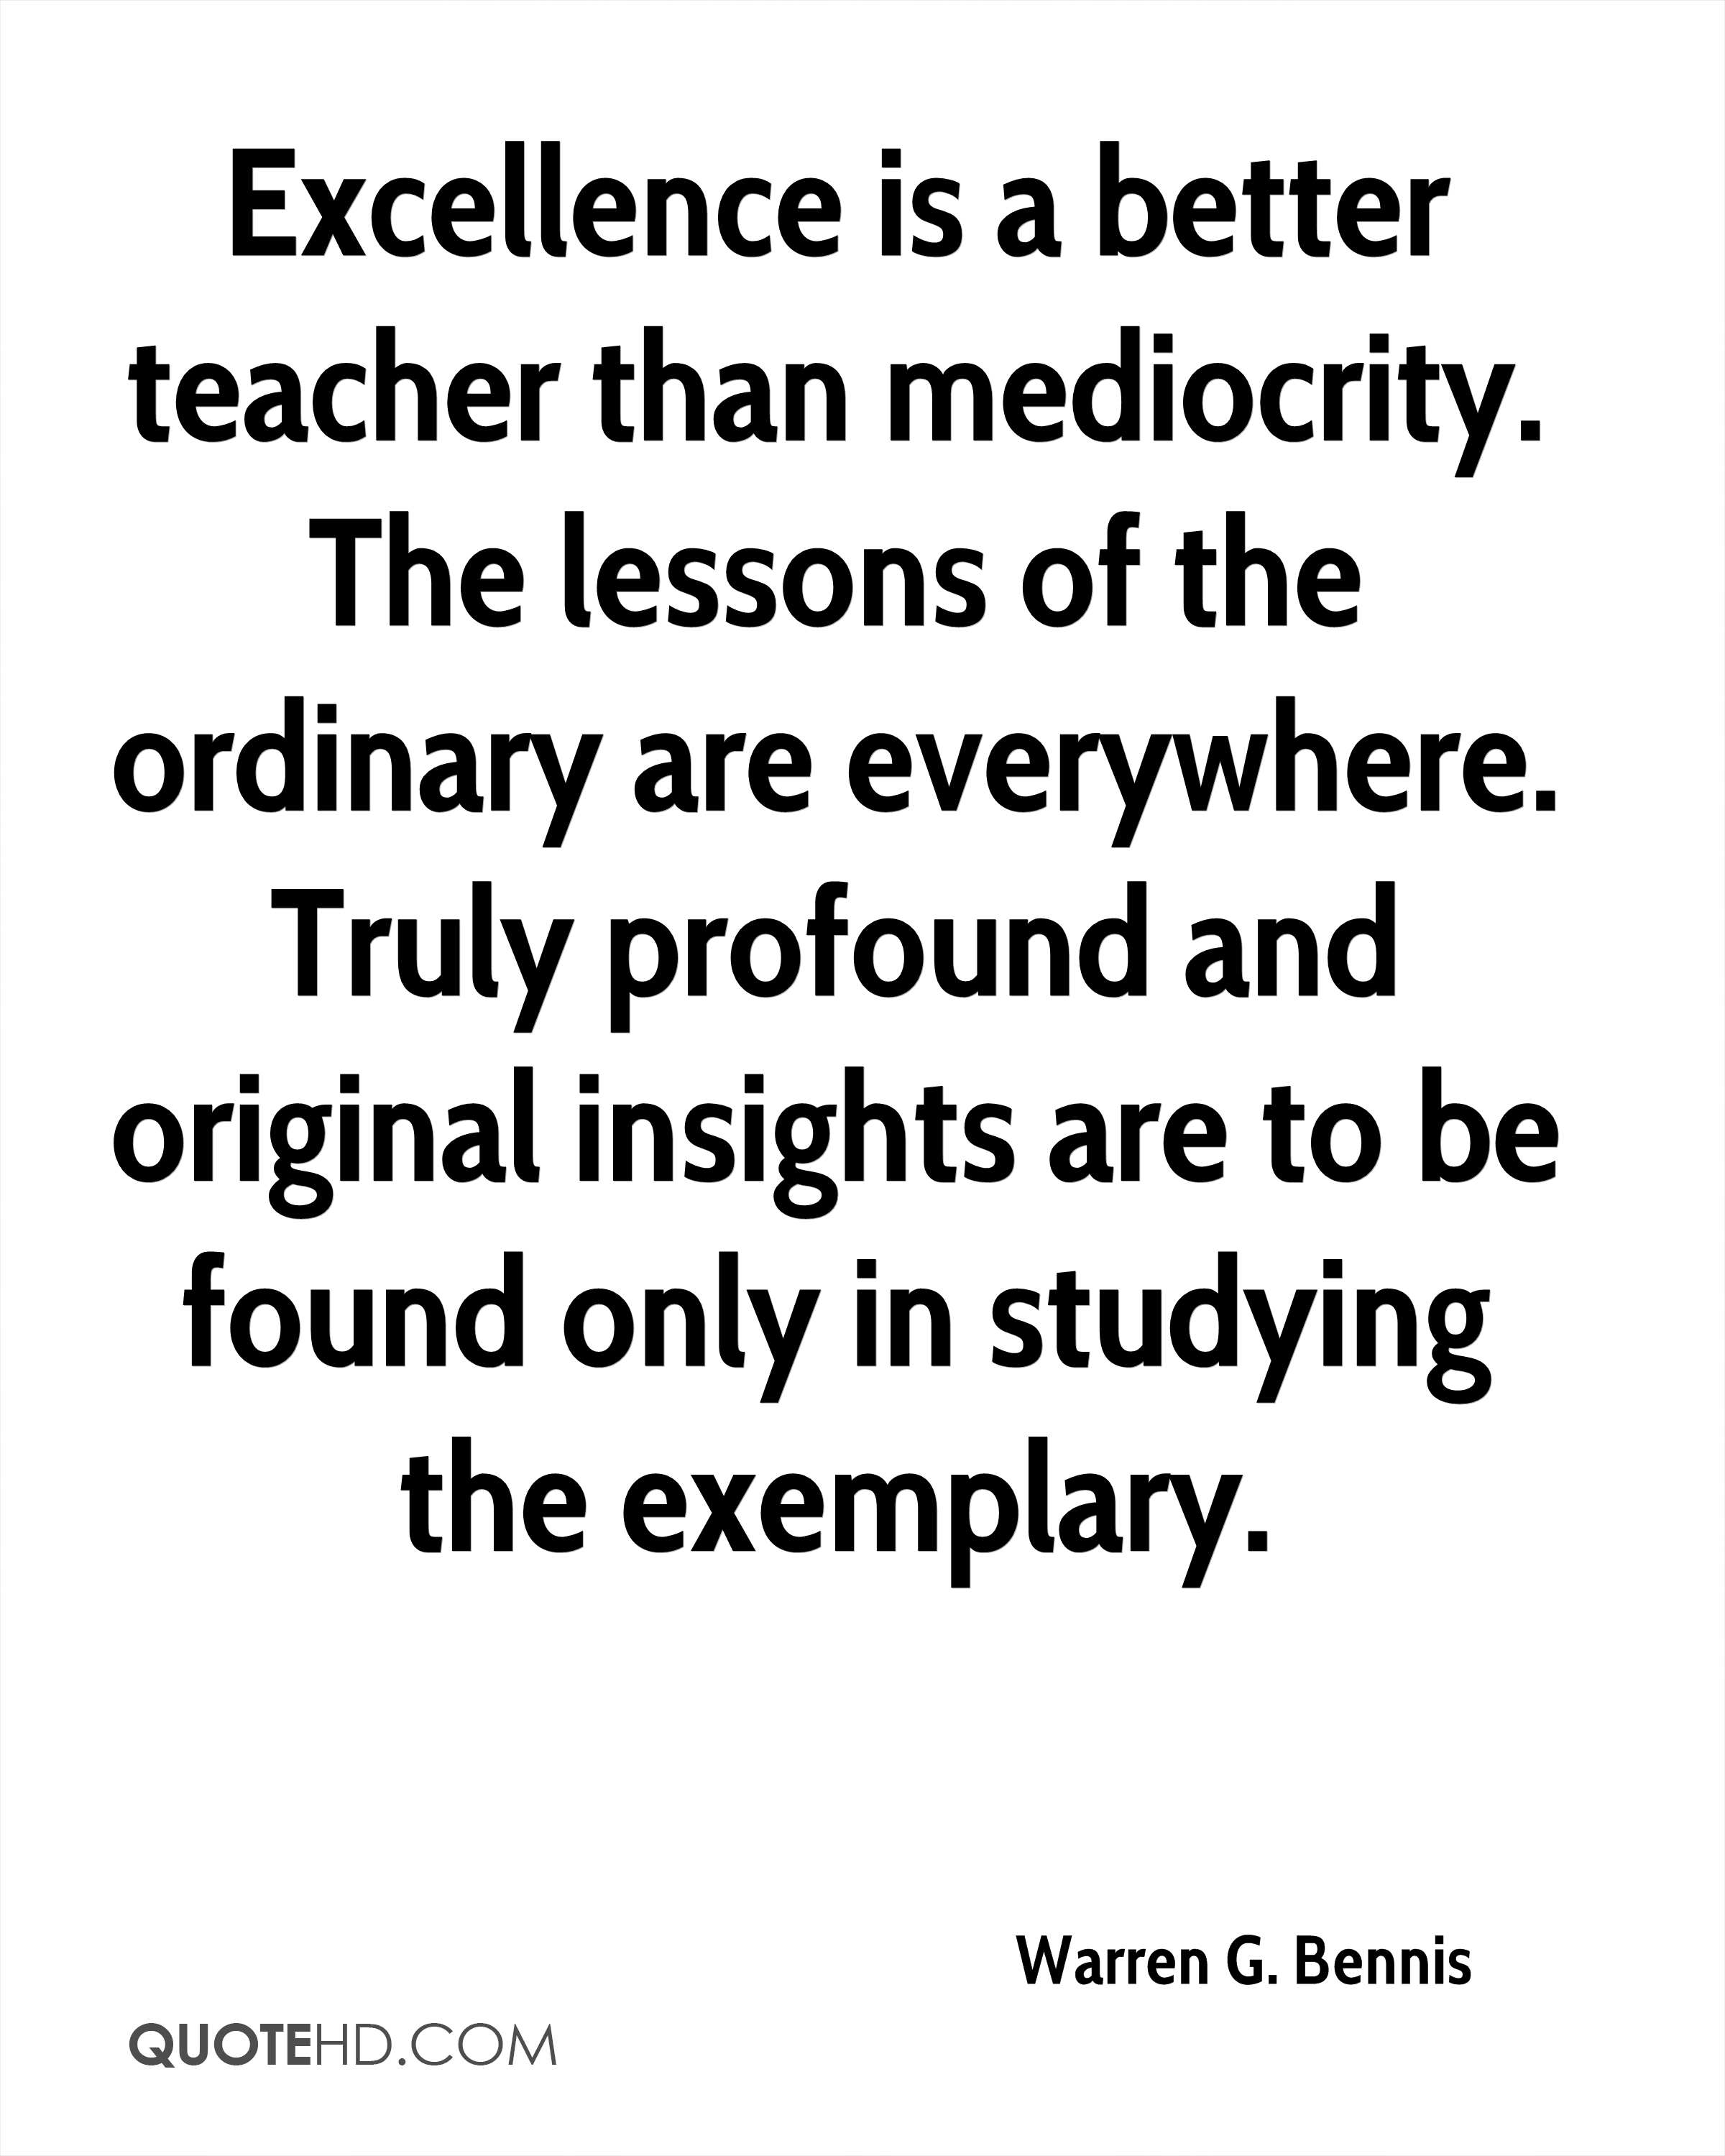 Excellence is a better teacher than mediocrity. The lessons of the ordinary are everywhere. Truly profound and original insights are to be found only in studying the exemplary.